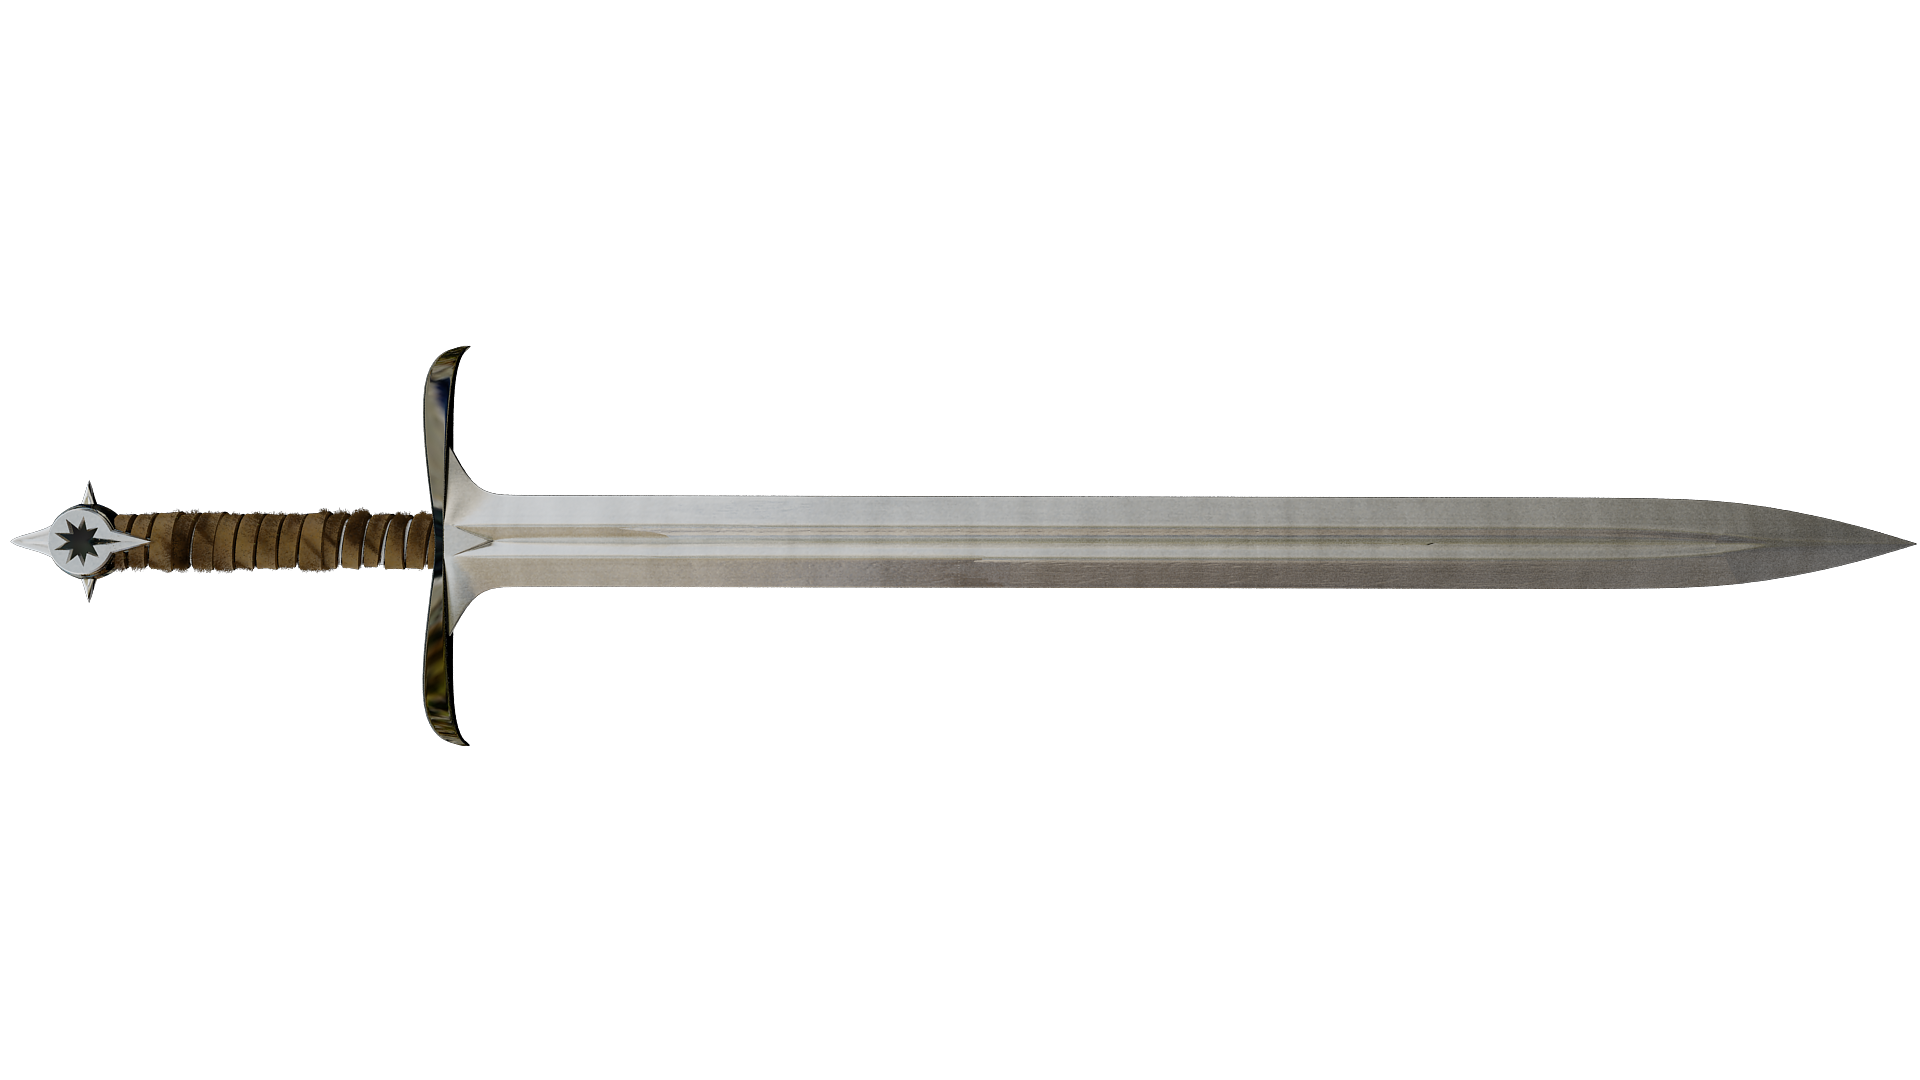 Dingues de Séries Télé & Avatar Land Sword-hd-png-sword-png-image-1920